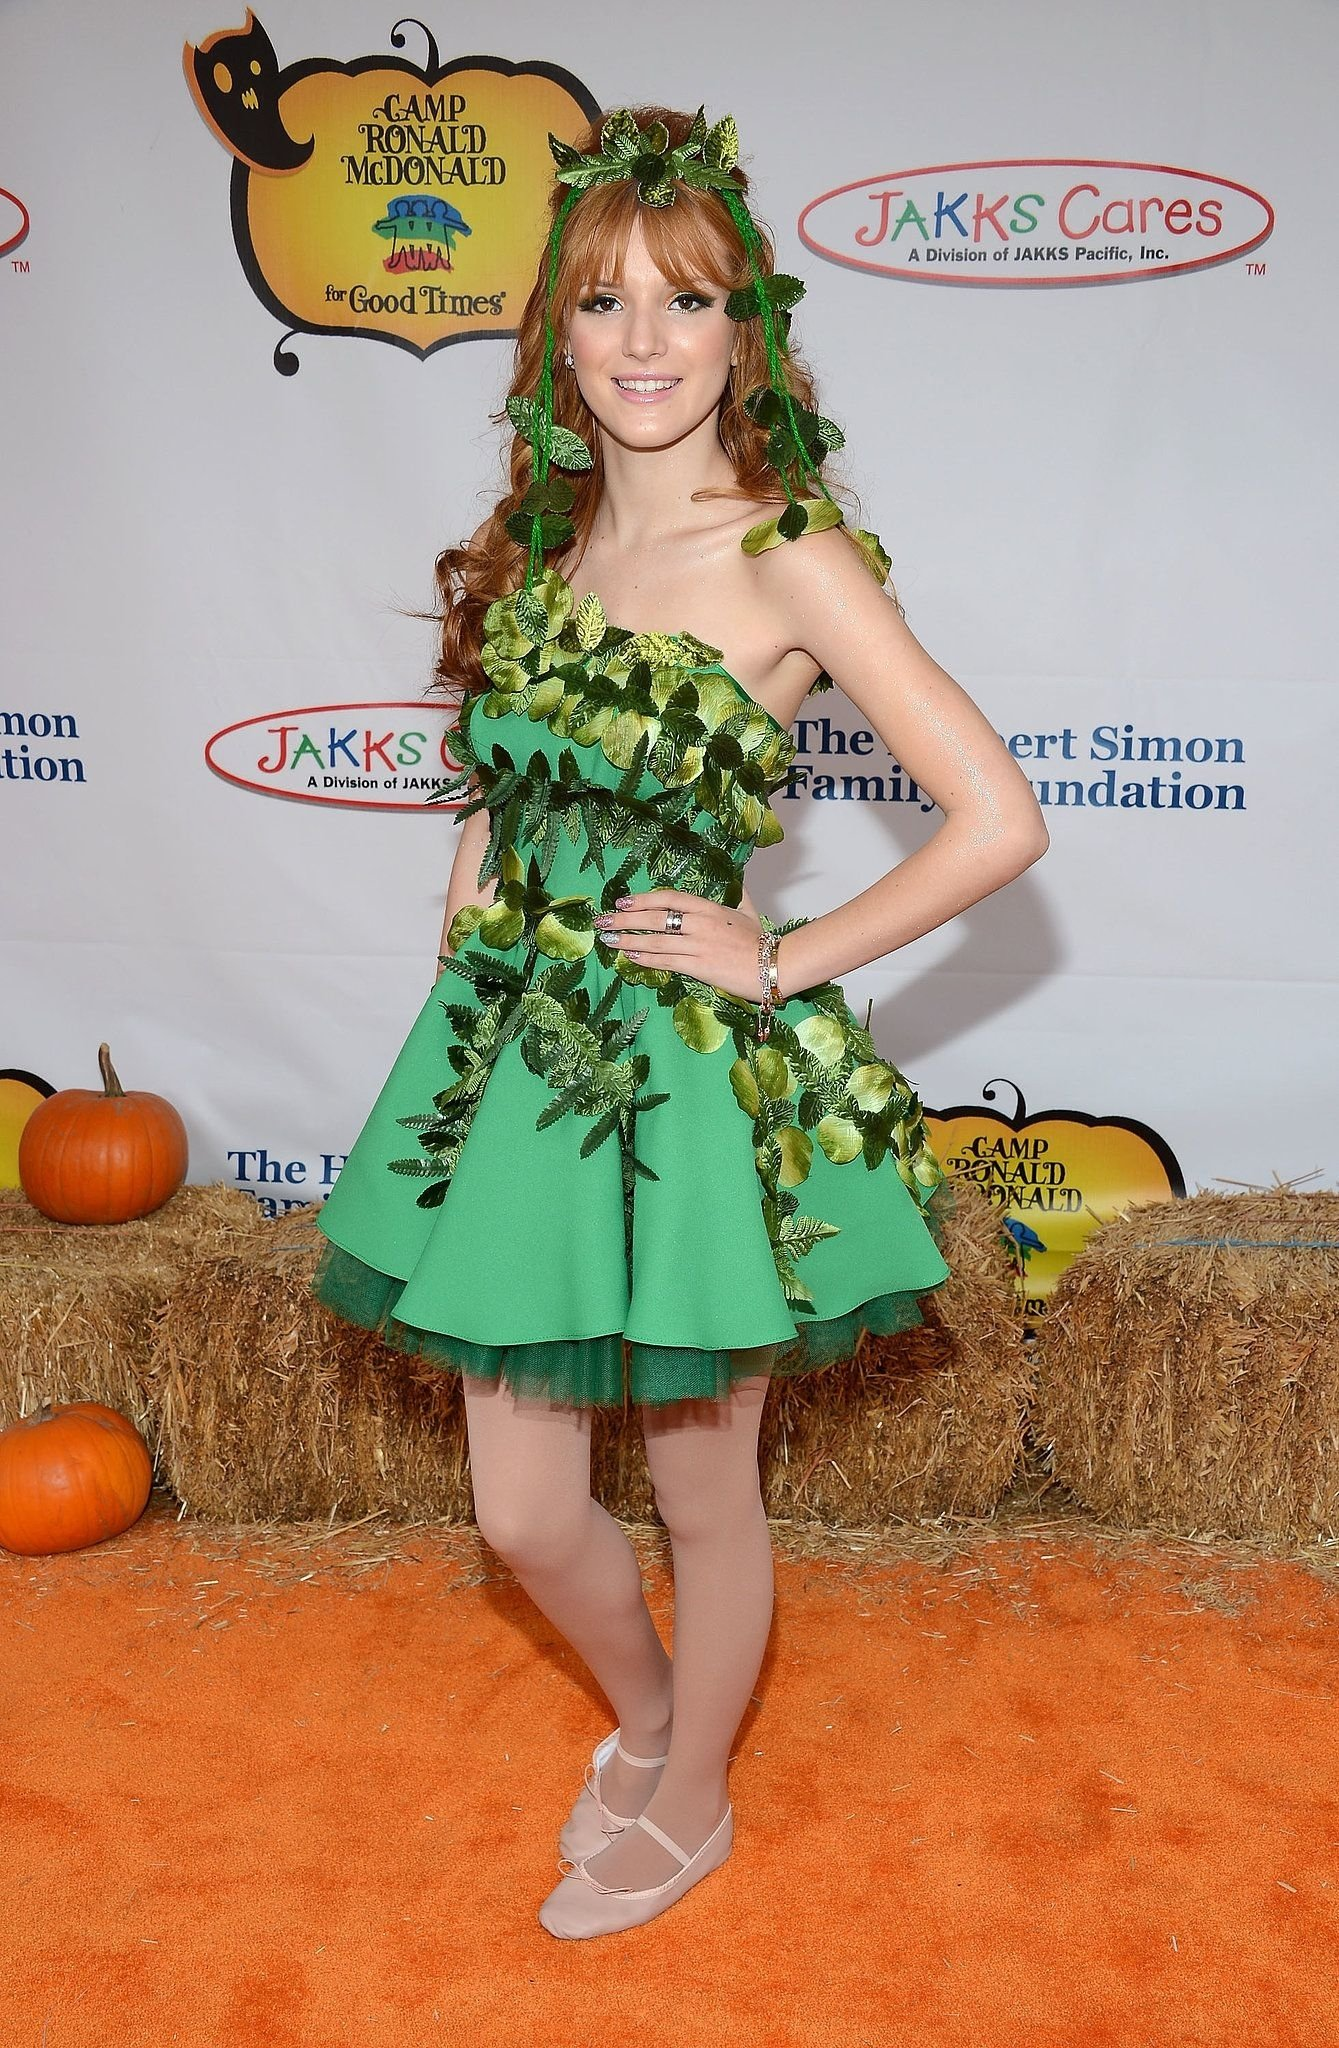 bella thorne attended the 2012 camp ronald mcdonald for good times